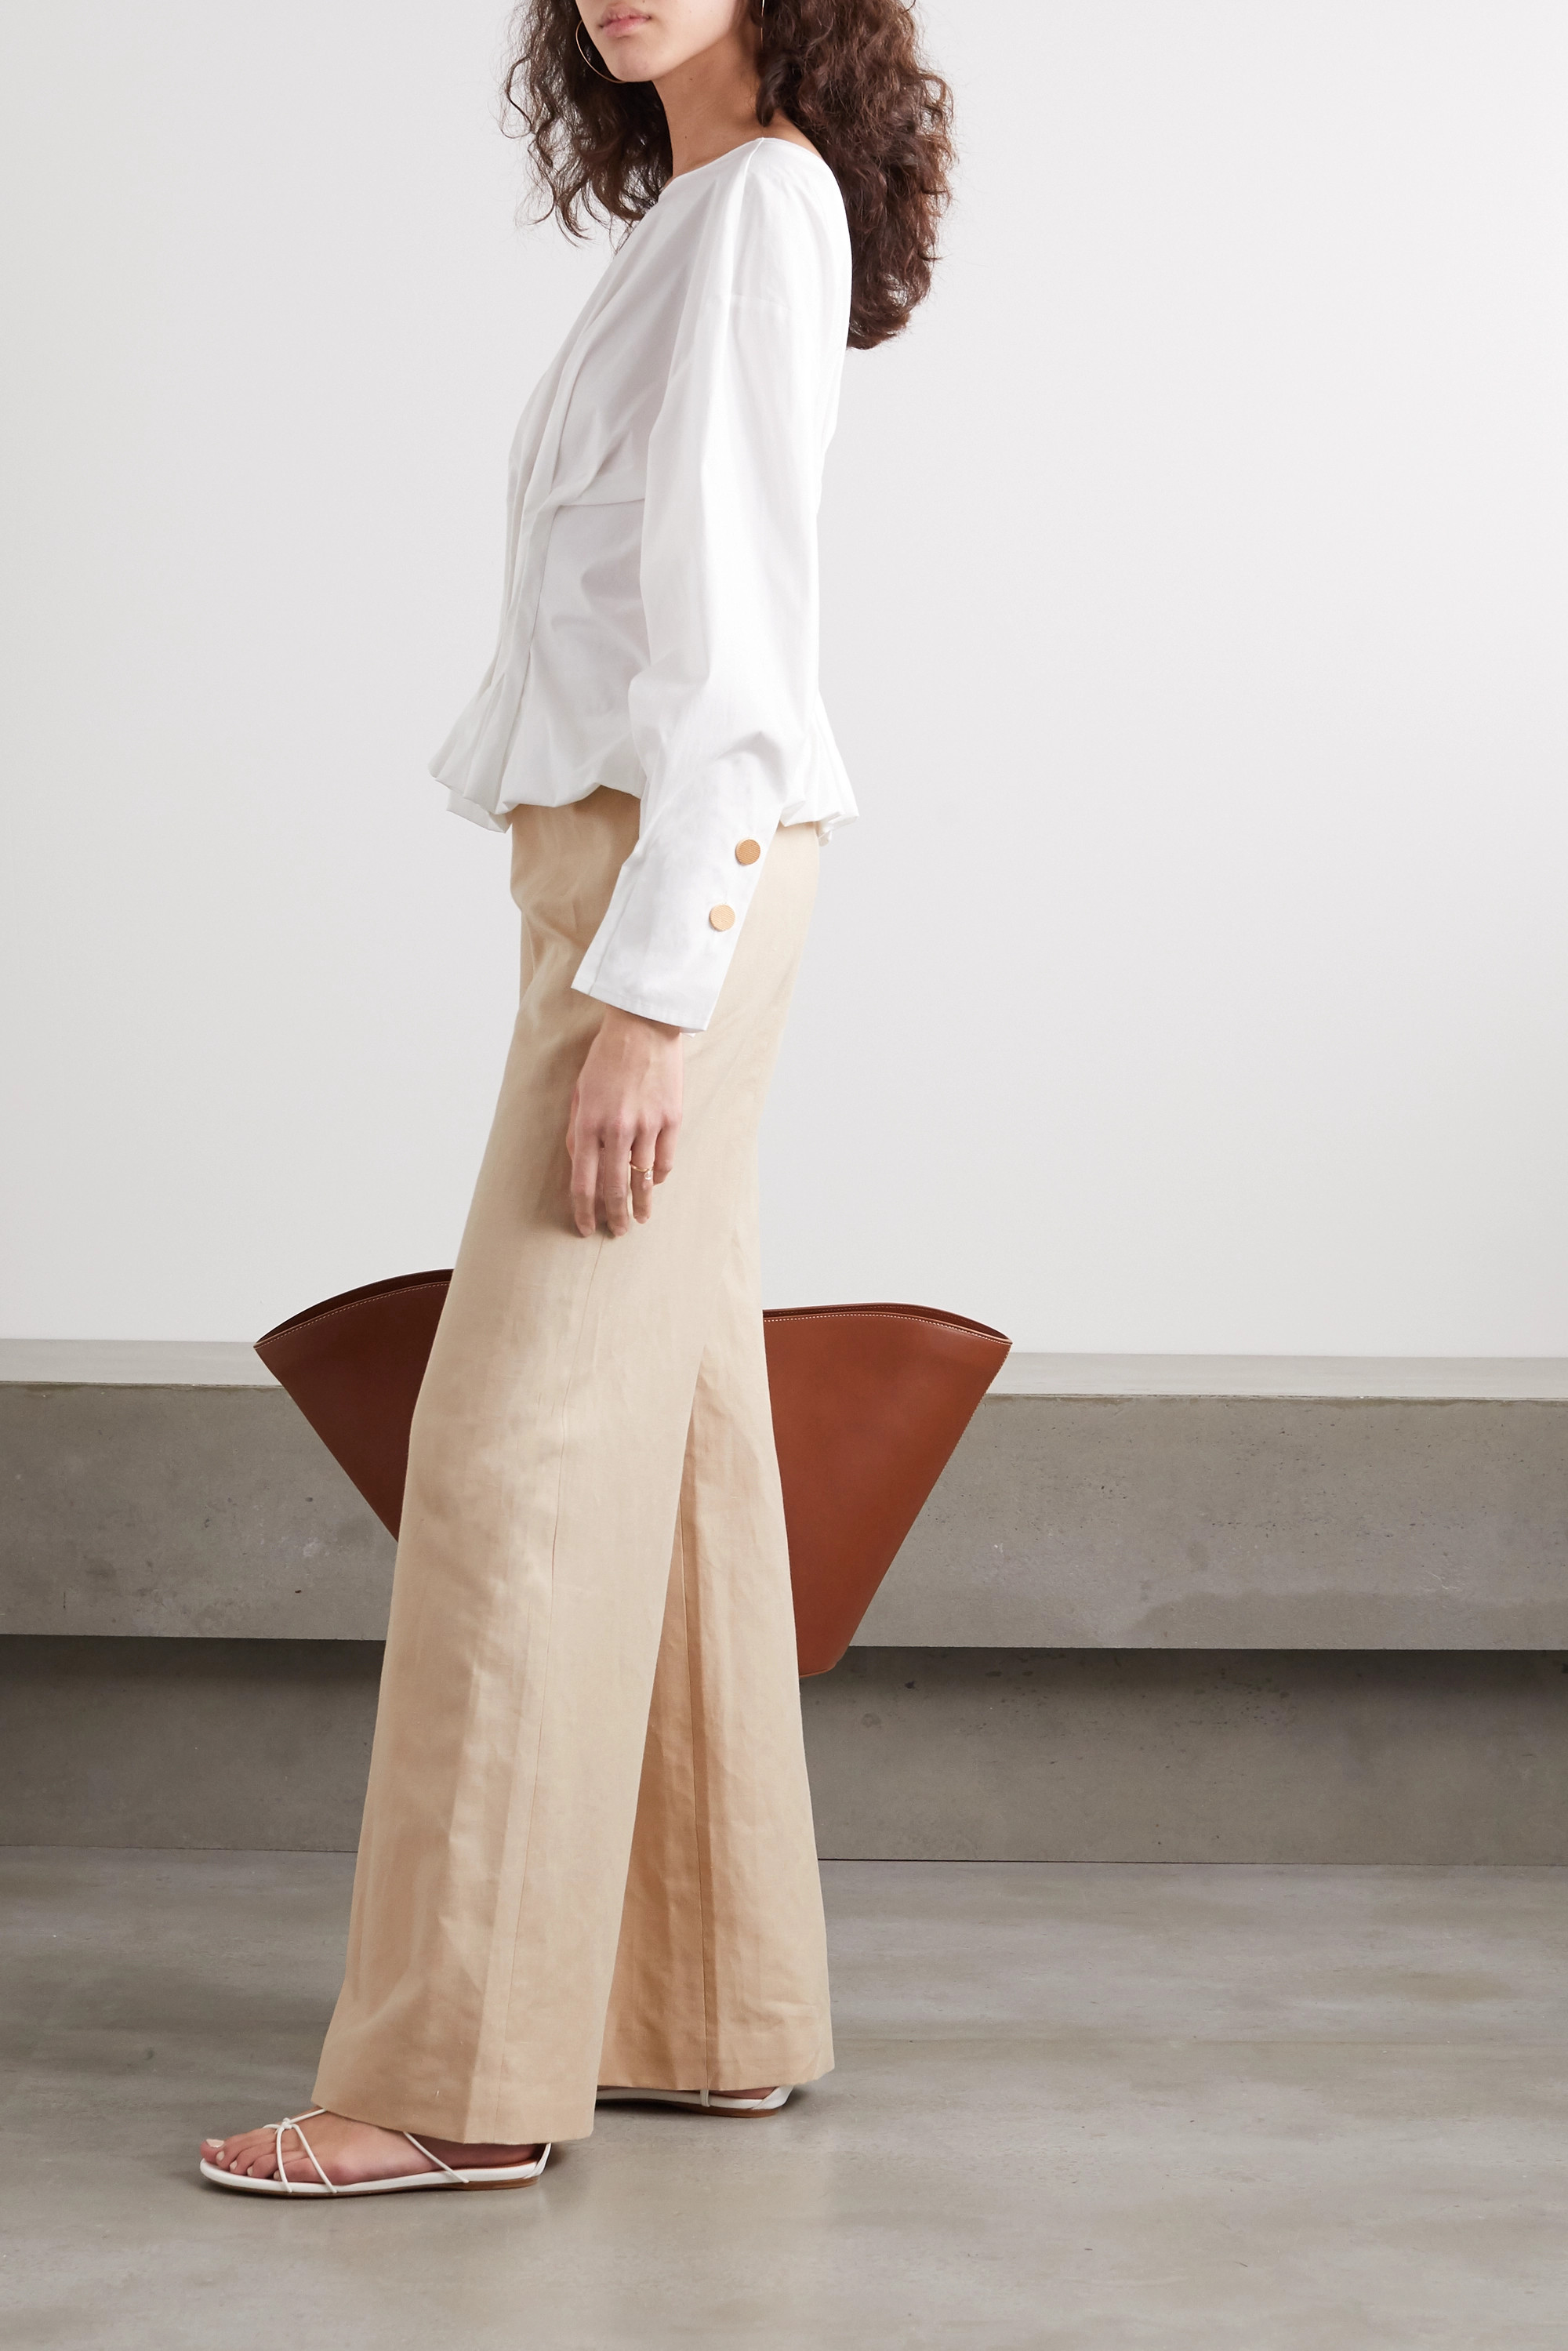 Beige Avto Linen And Cotton Blend Canvas Flared Pants Palmer Harding Net A Porter Express yourself with rich, visual storytelling for your brand with jack harding's expert commercial photography and videography services. net a porter